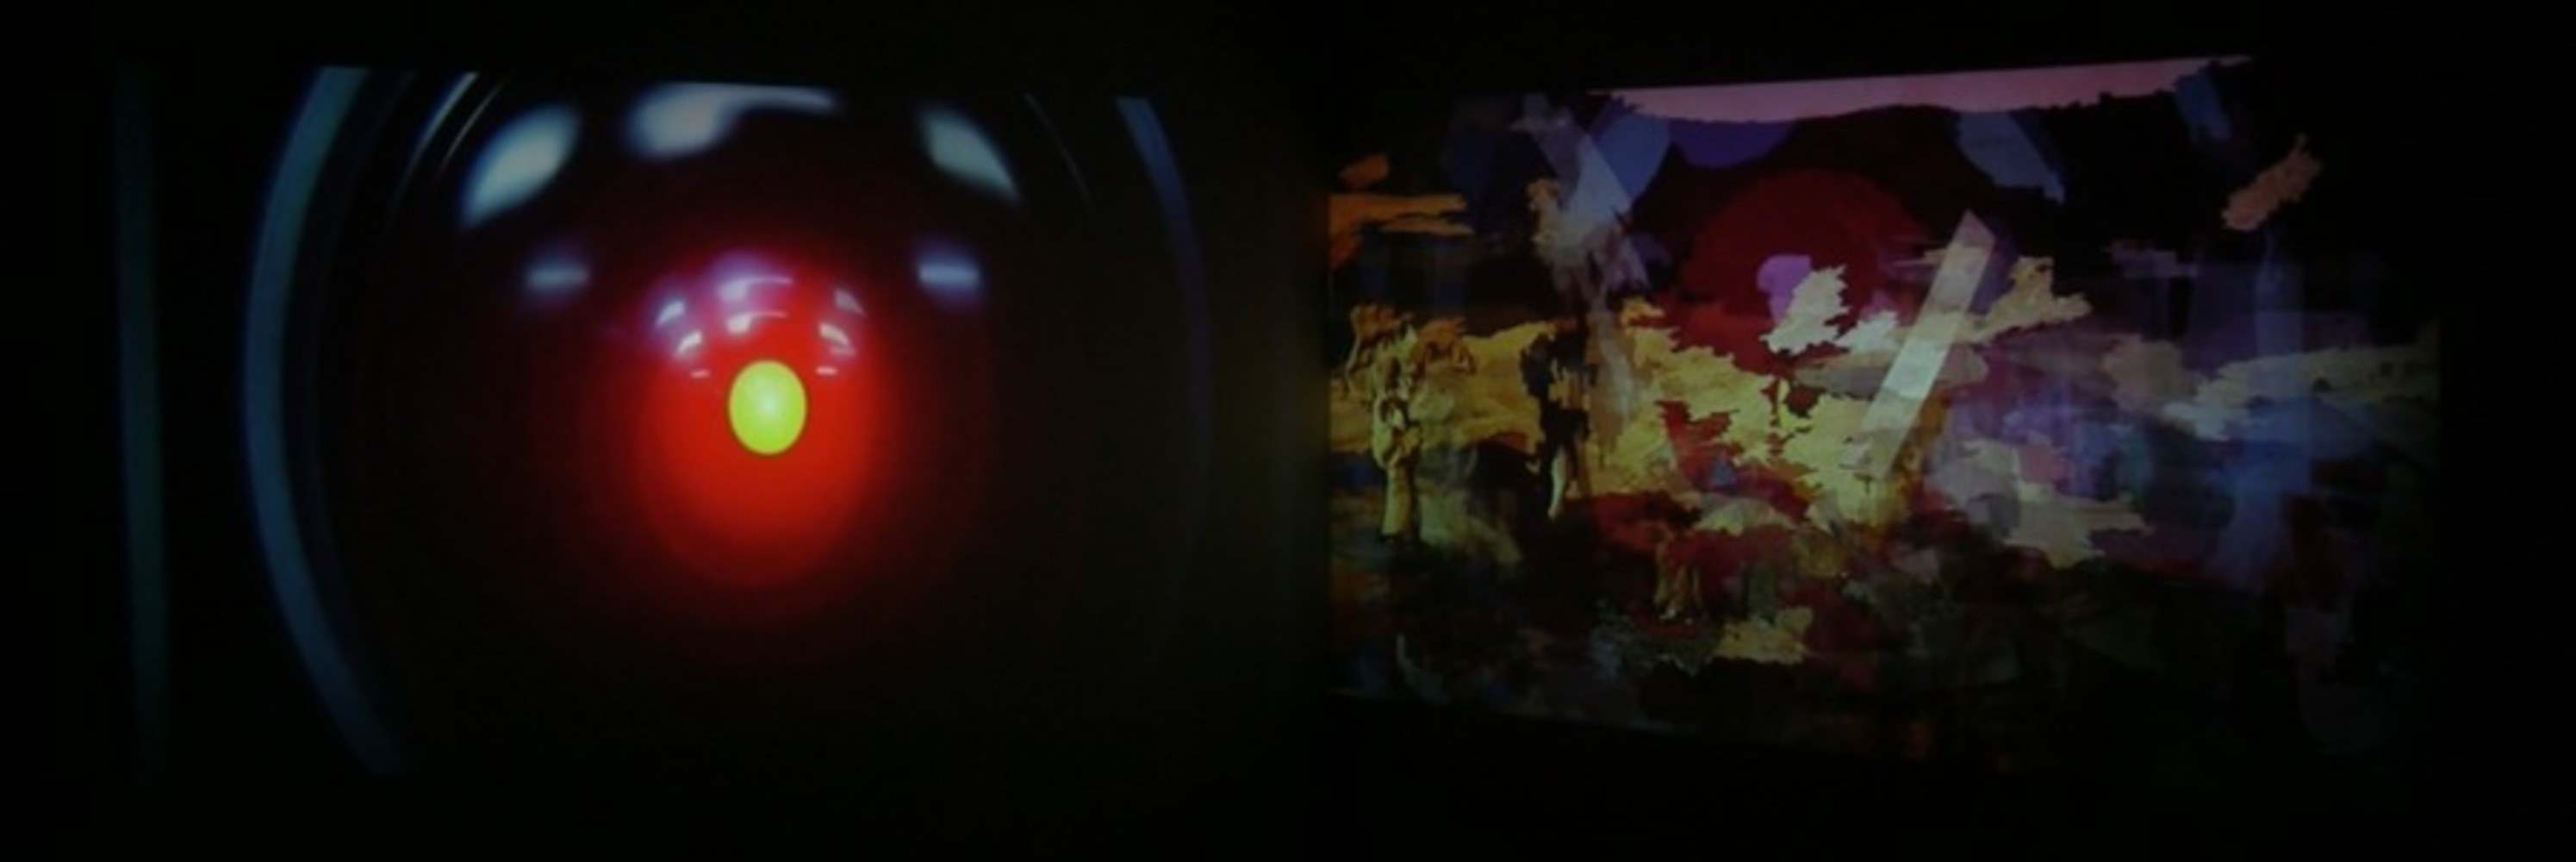 "The image is clearly divided down the middle, creating a left side and a right side. Left side: a bright yellow light surrounded by a glowing red halo of light, both set in the center of a large, shiny black circle. It is a mechanical ""eye."" Right side: splotches of color that do not clearly represent specific scenes, but some warm colors and textures of desert landscape are emphasized. There are concentric circles of yellow and red with some subtle blue halos around them. These circles very slightly resemble the mechanical eye on the left."